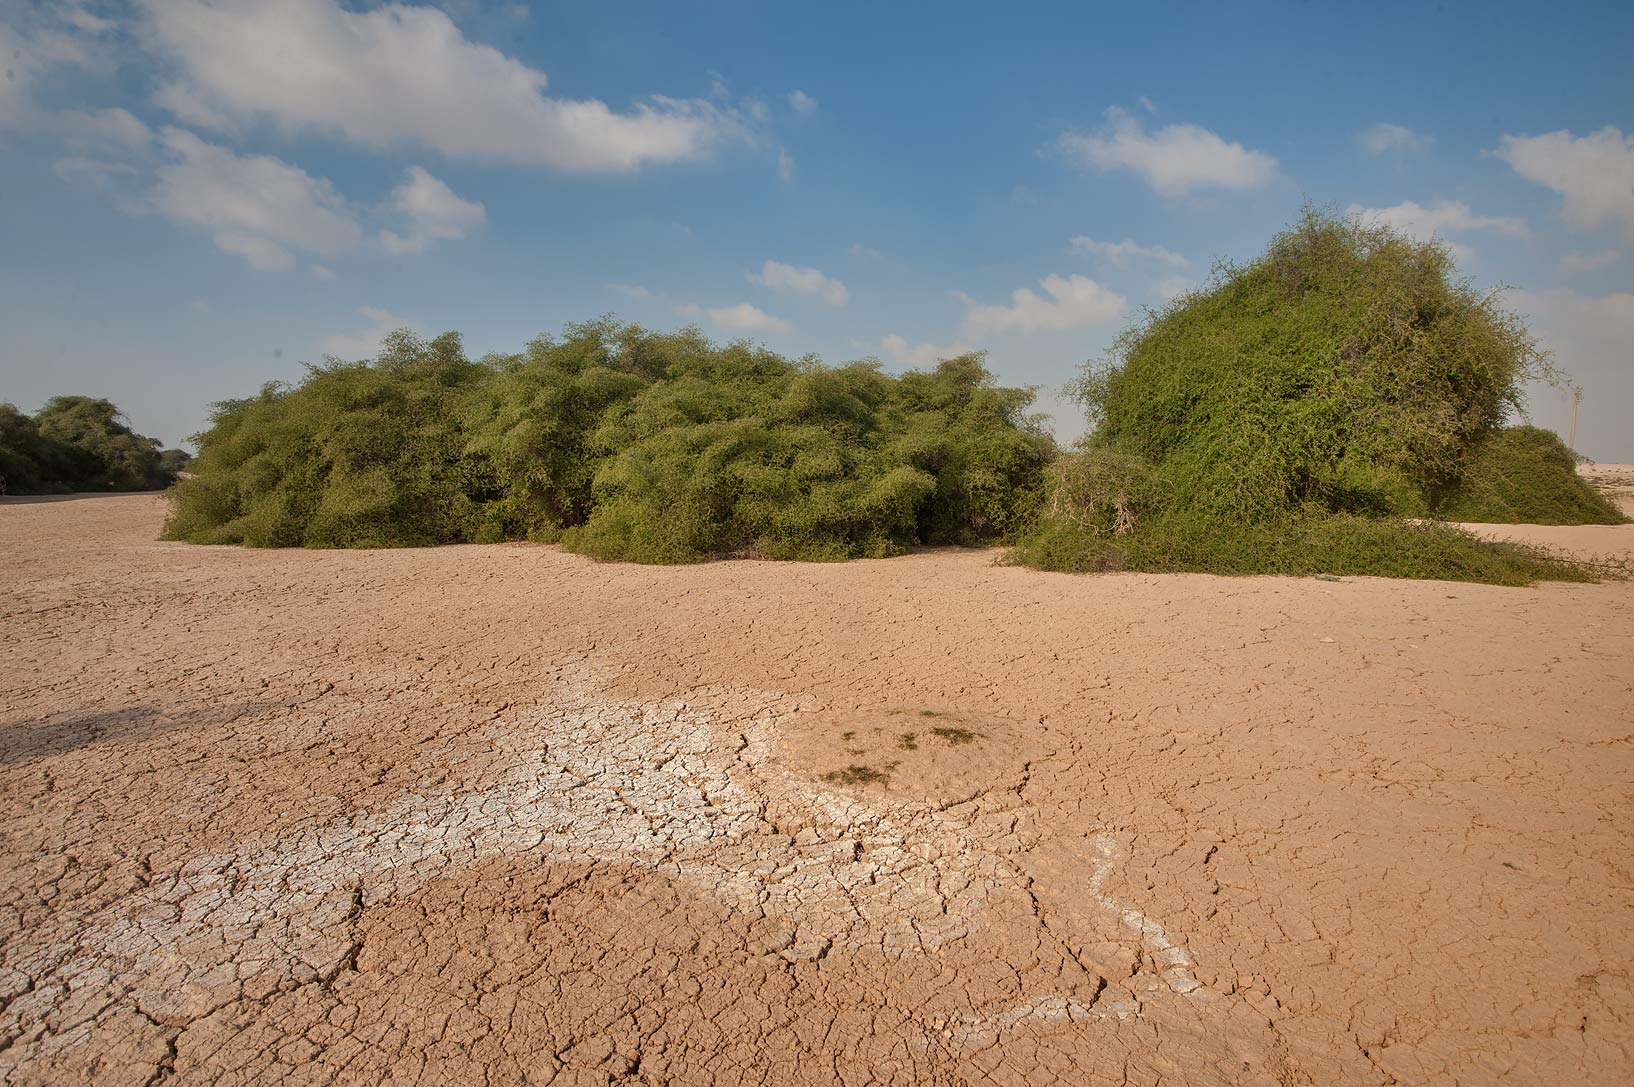 Silty depression, with bushes of Ziziphus...Nuaman (Numan) in north-western Qatar